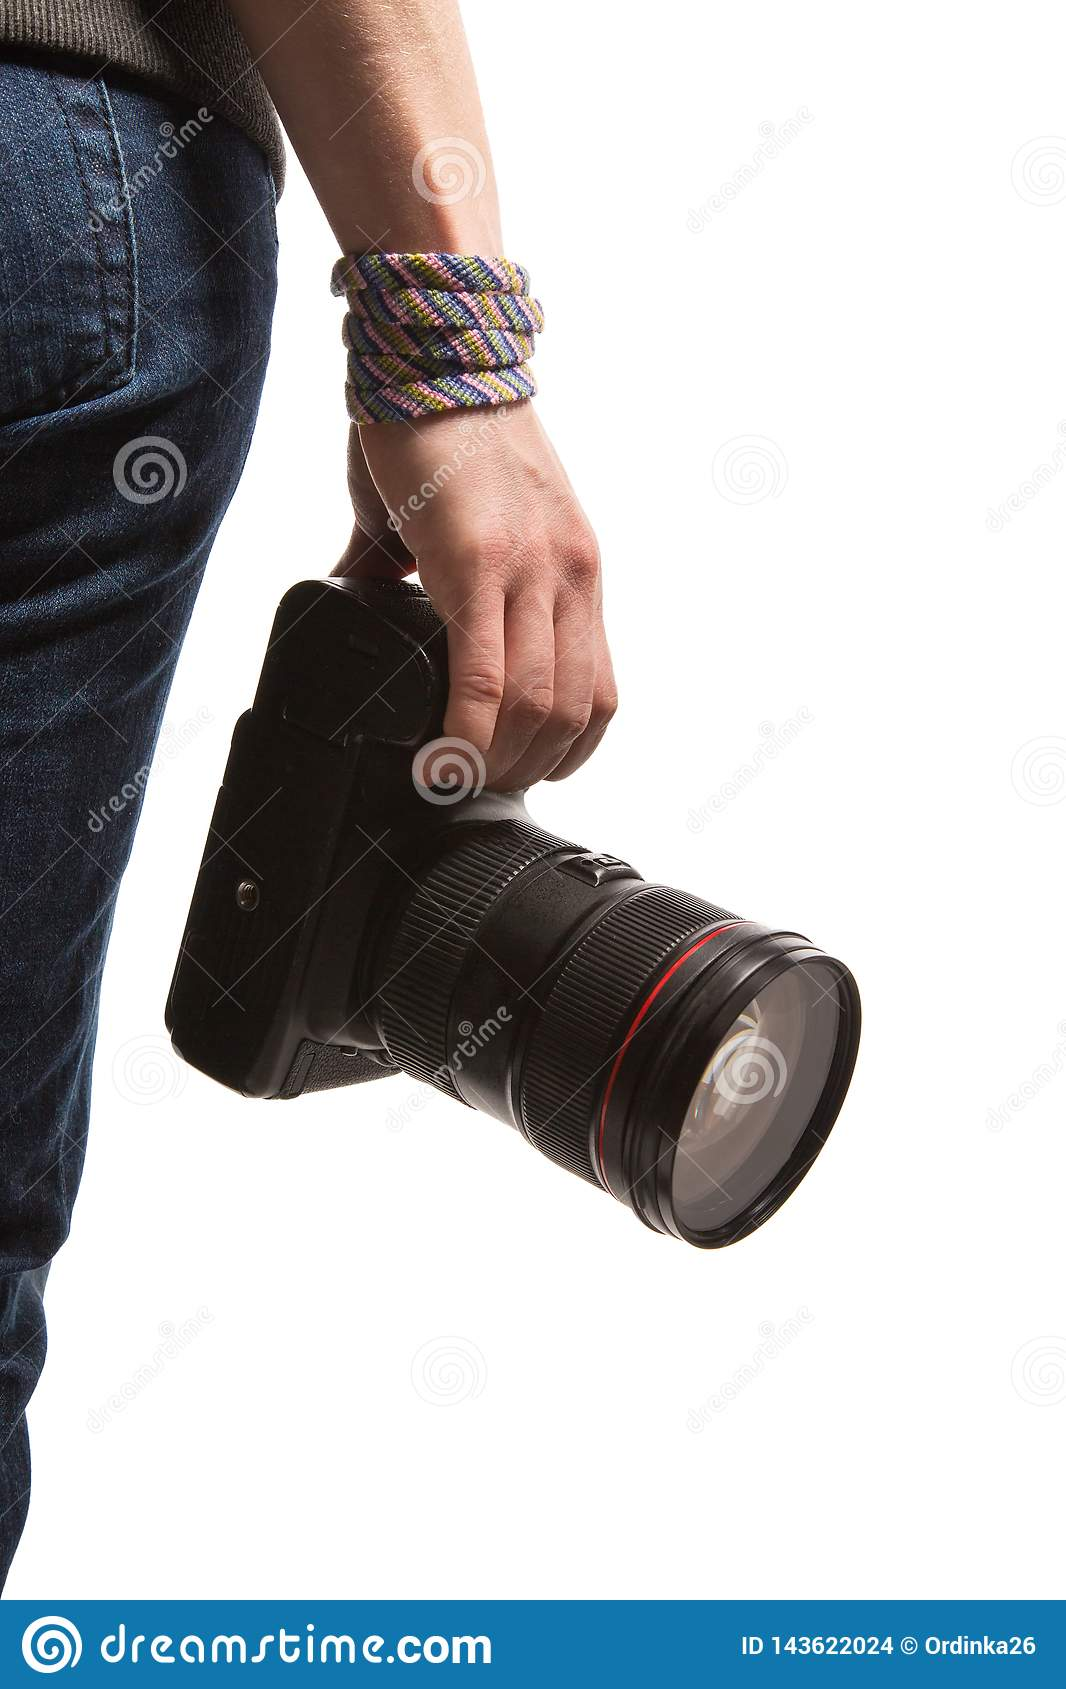 A teenager holds in her hand a DSLR camera. Isolated on white background